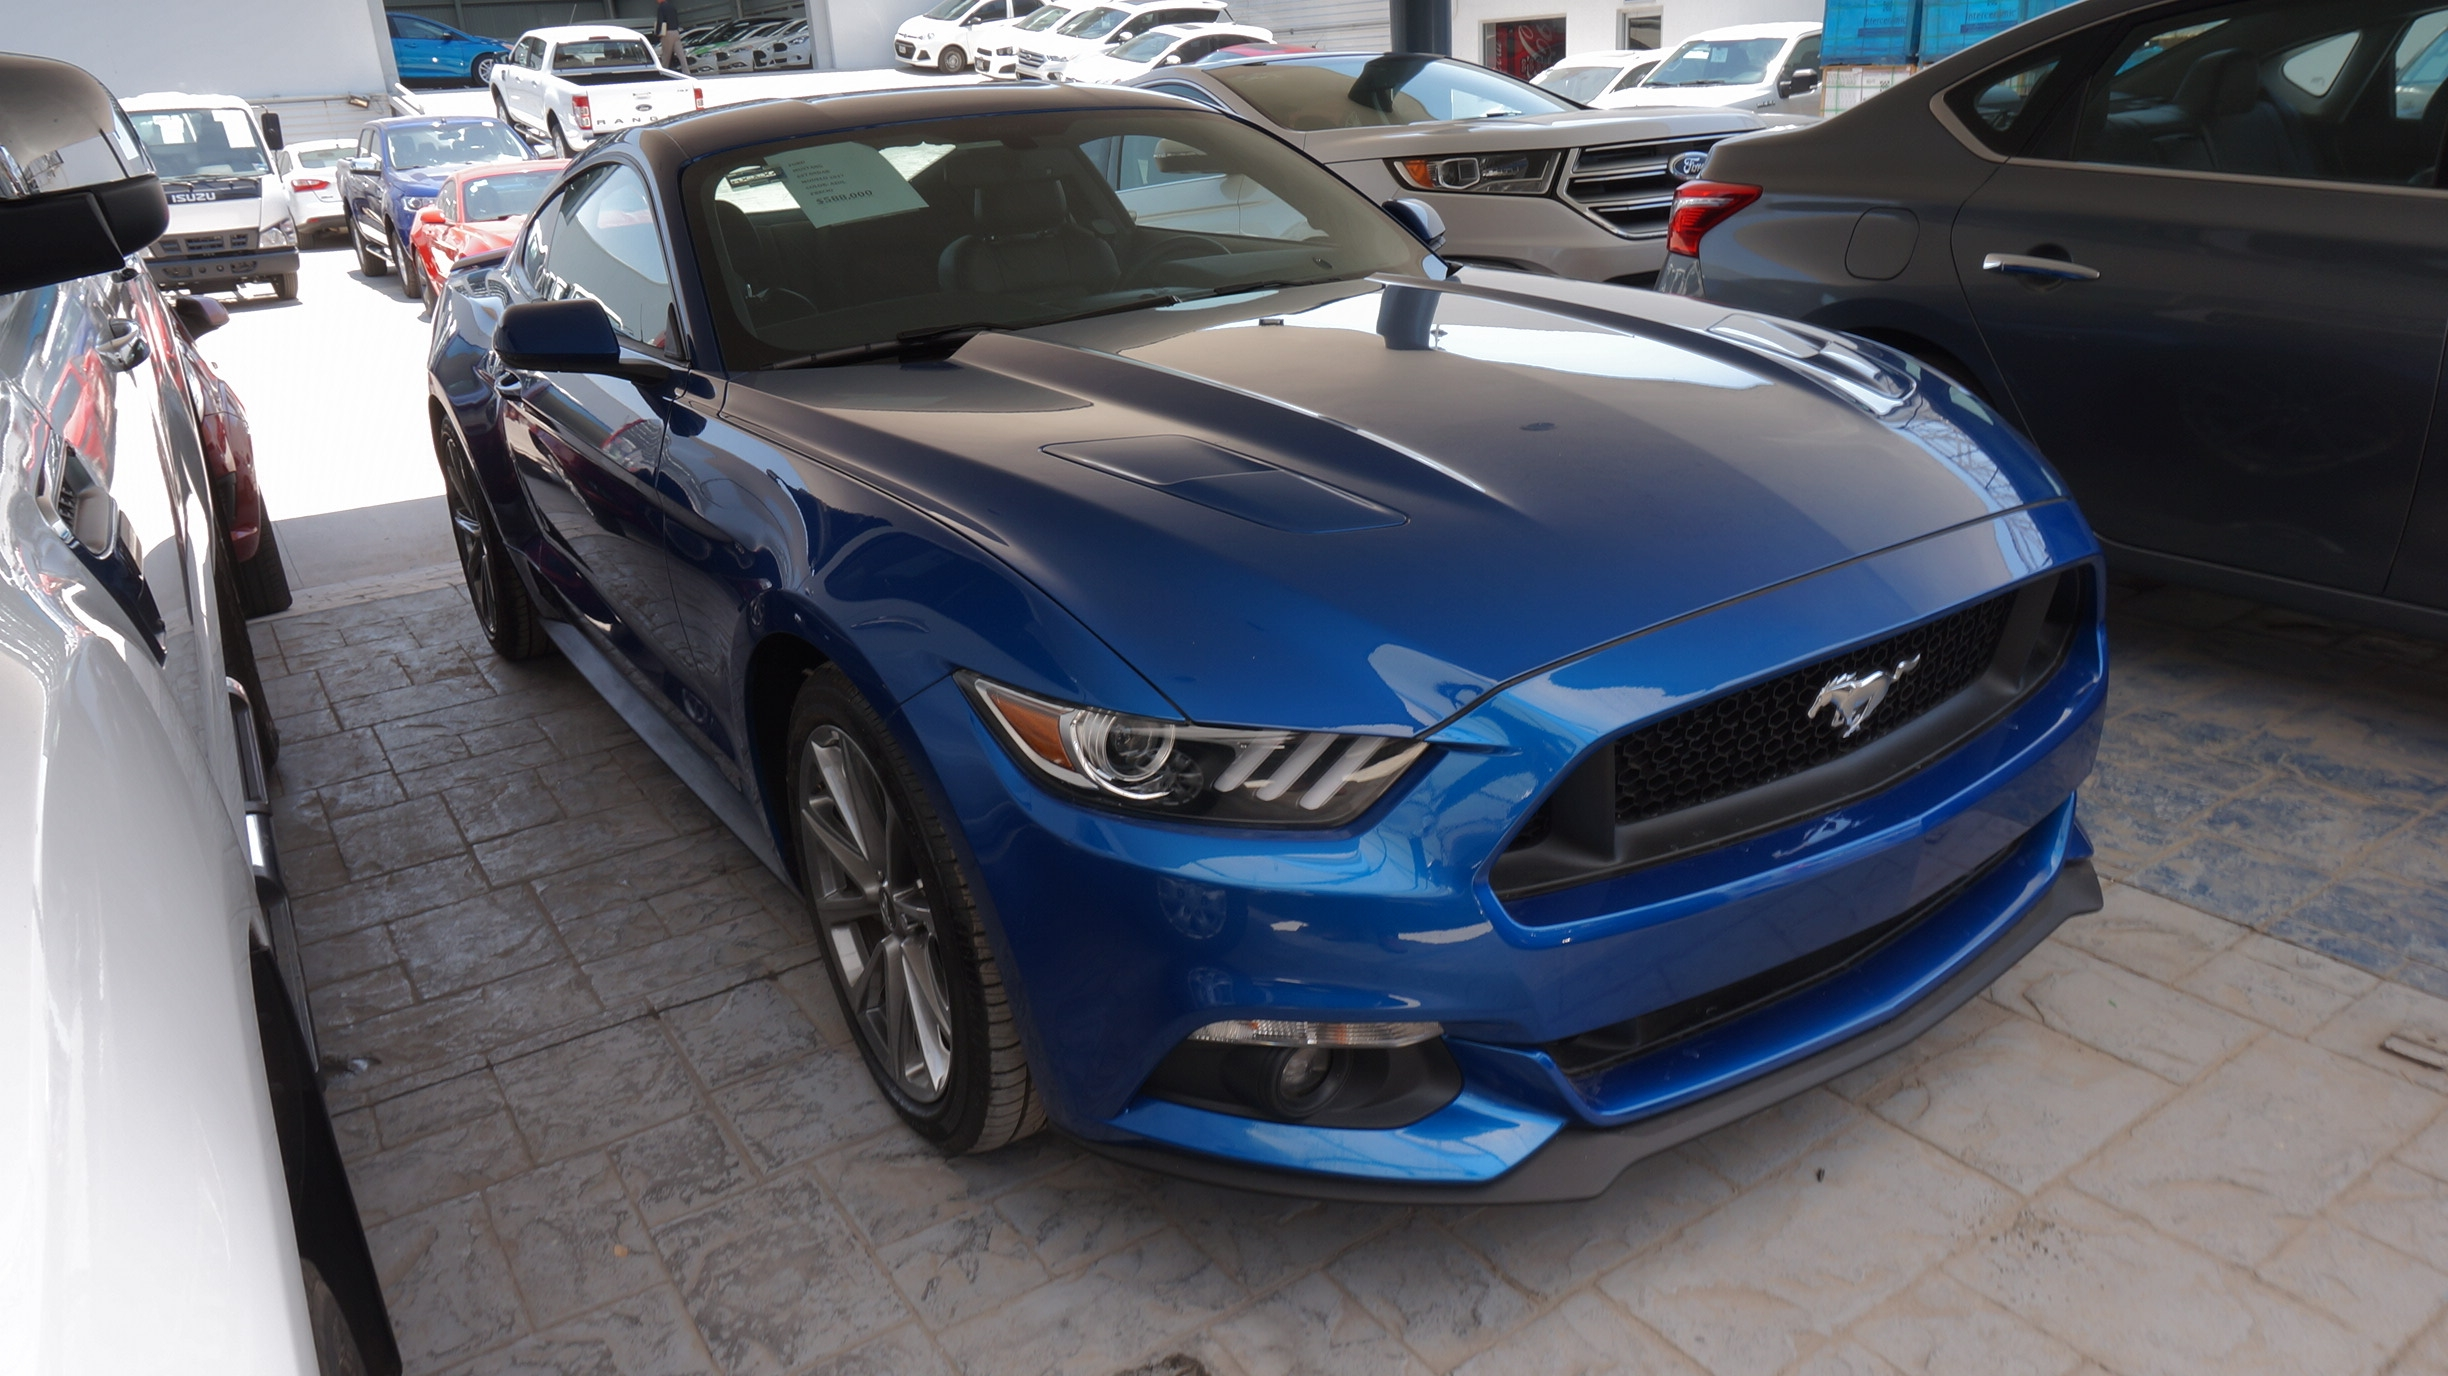 Ford Mustang Arriba 1